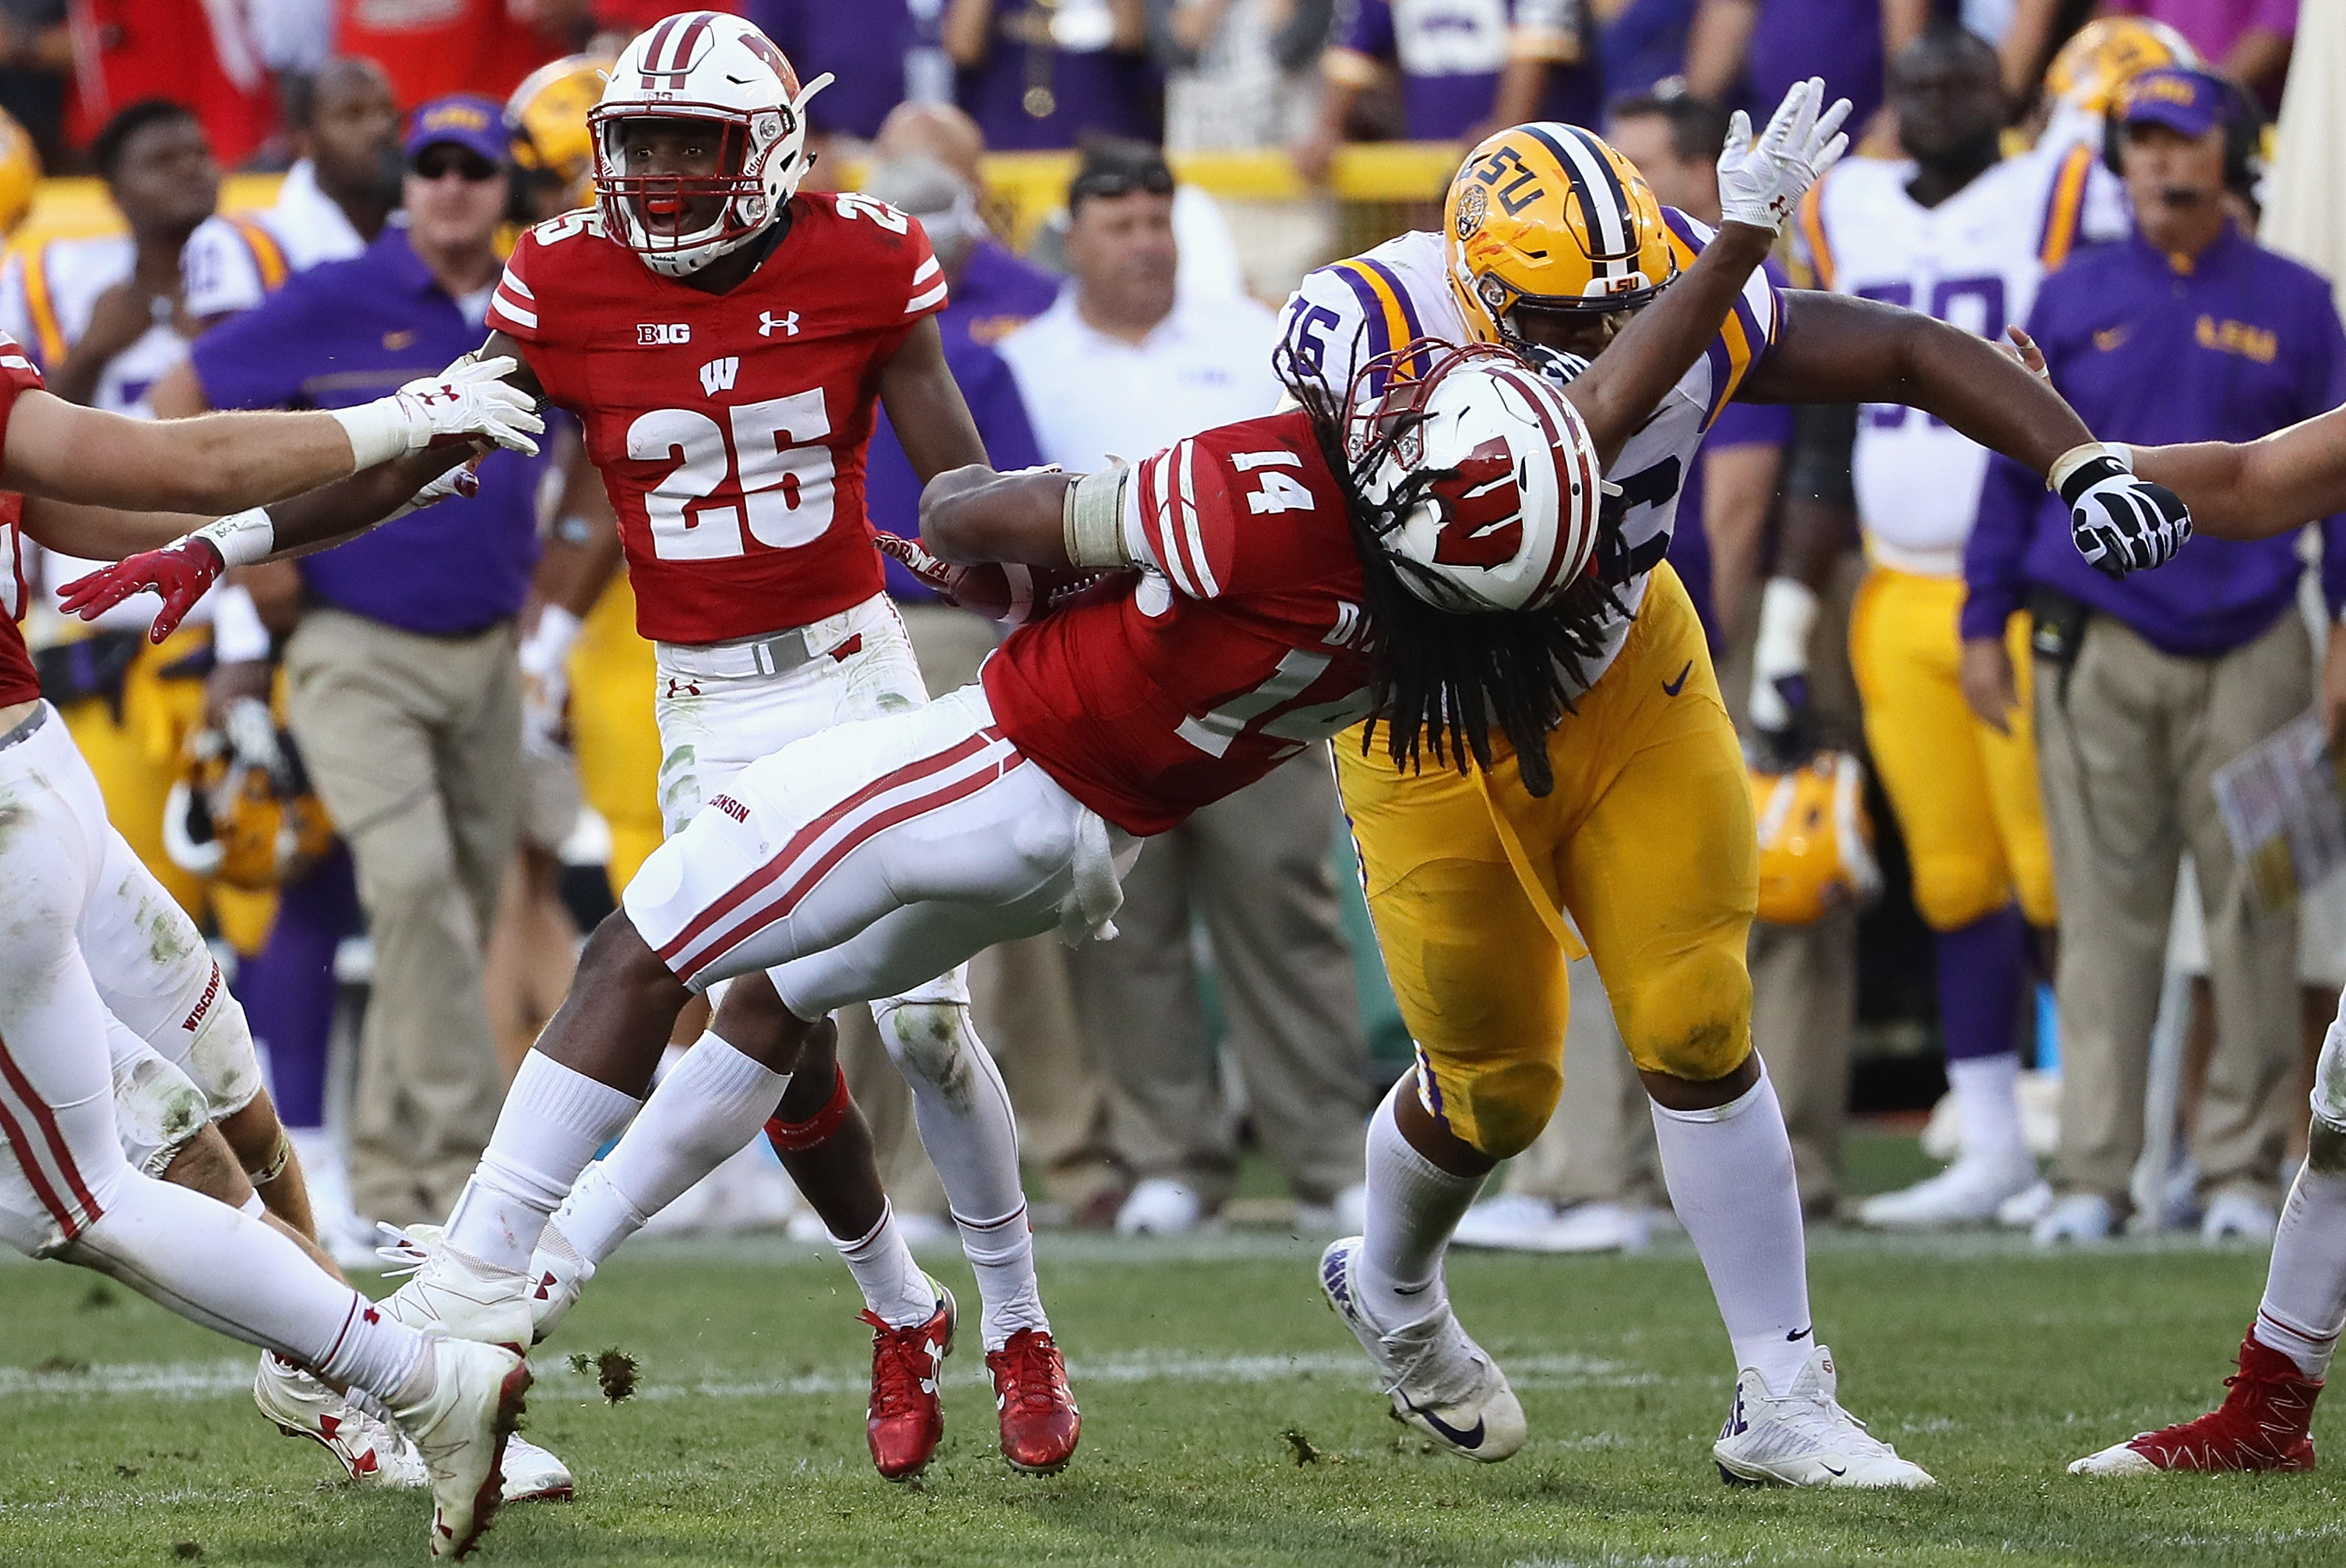 Lsu vs wisconsin betting line walt bettinger religion